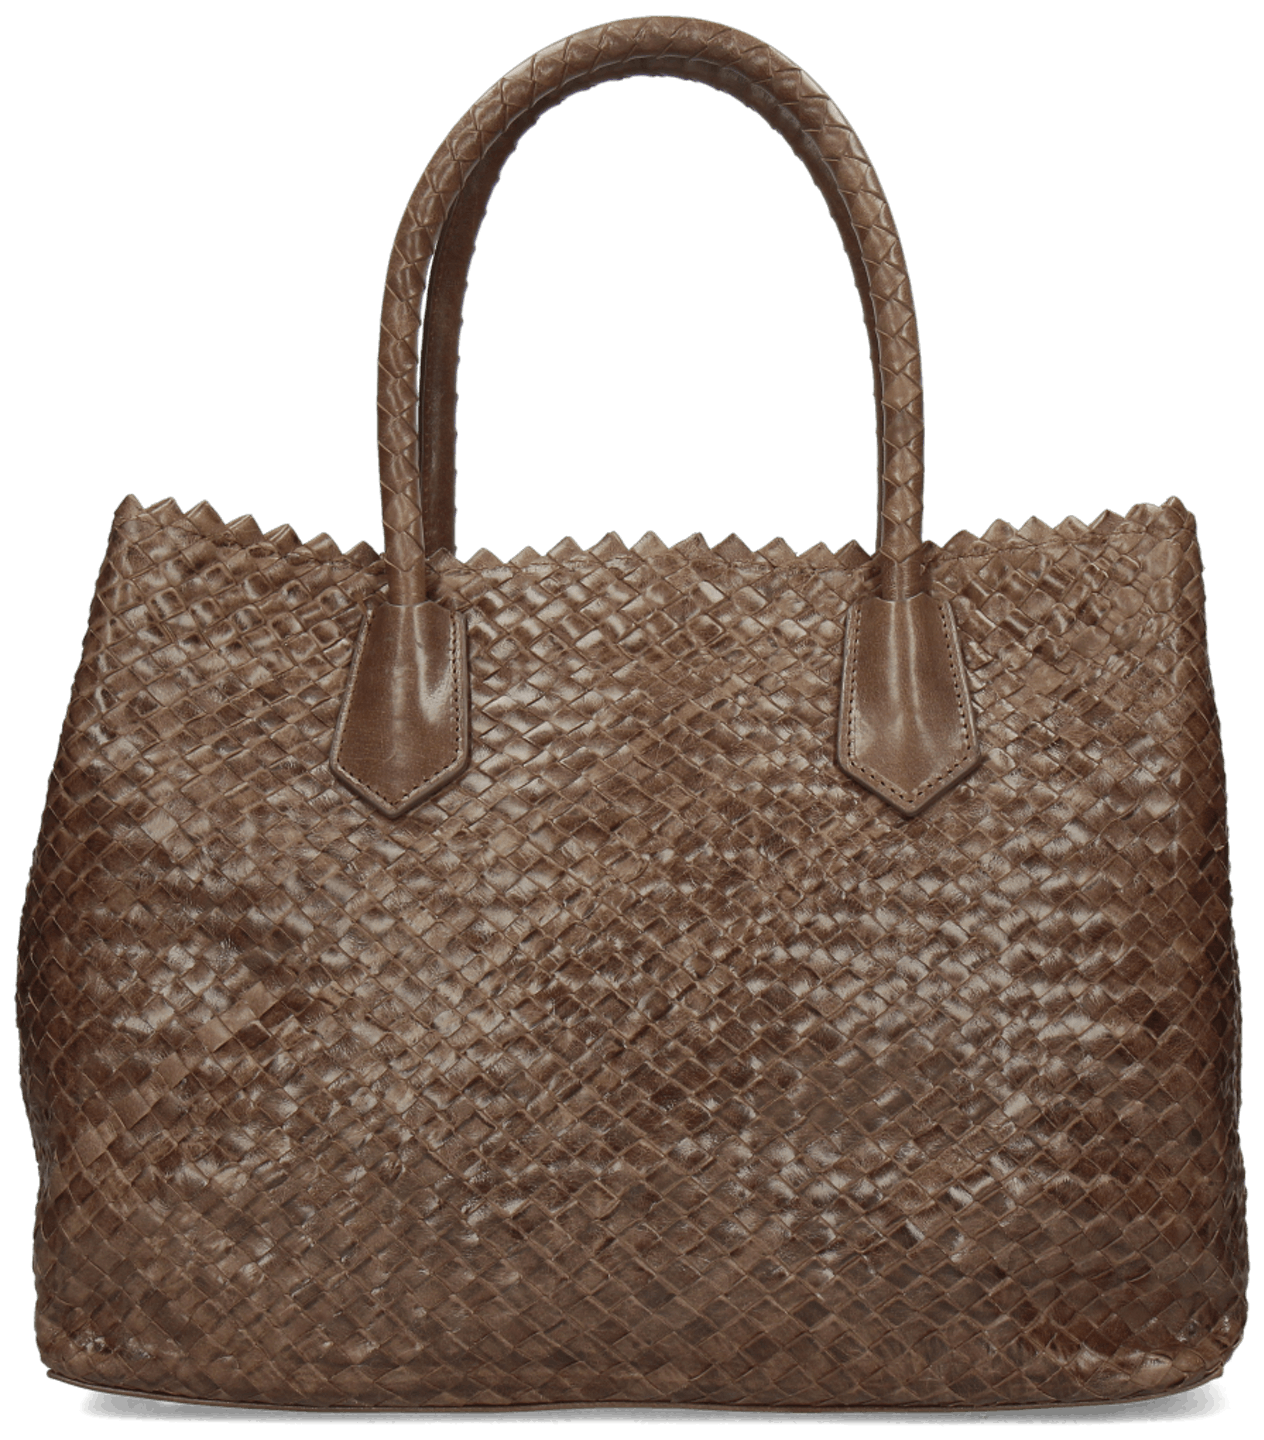 Kimberly 1 Woven Visione